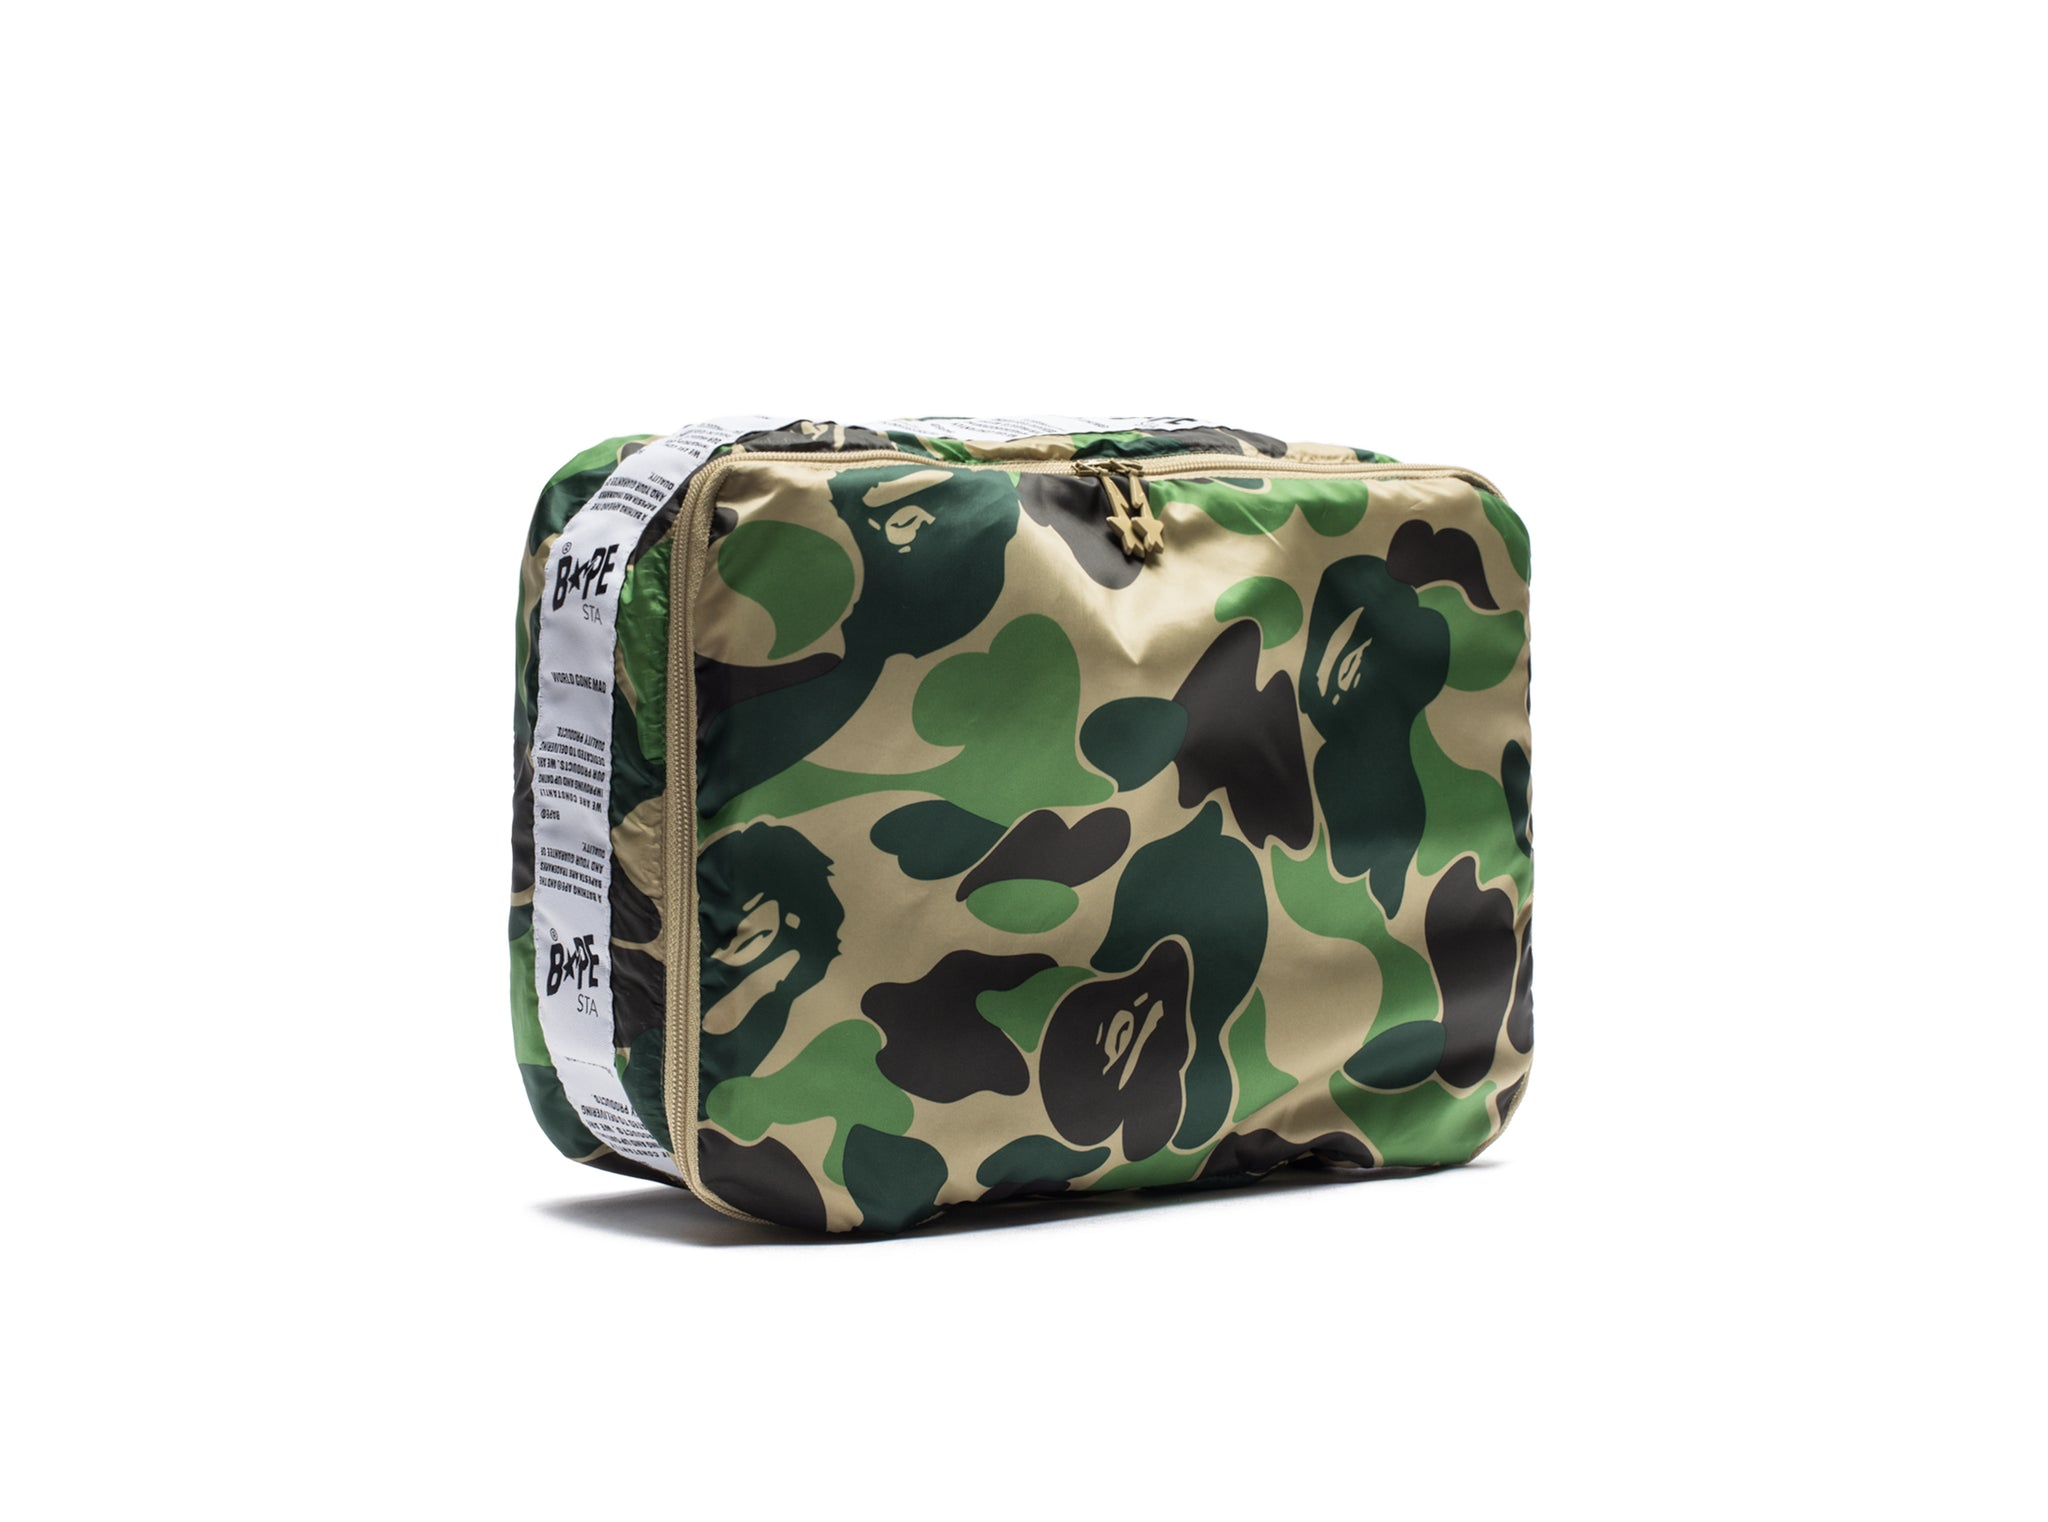 BAPE ABC CAMO ASSORTMENT CASE (S) - GREEN